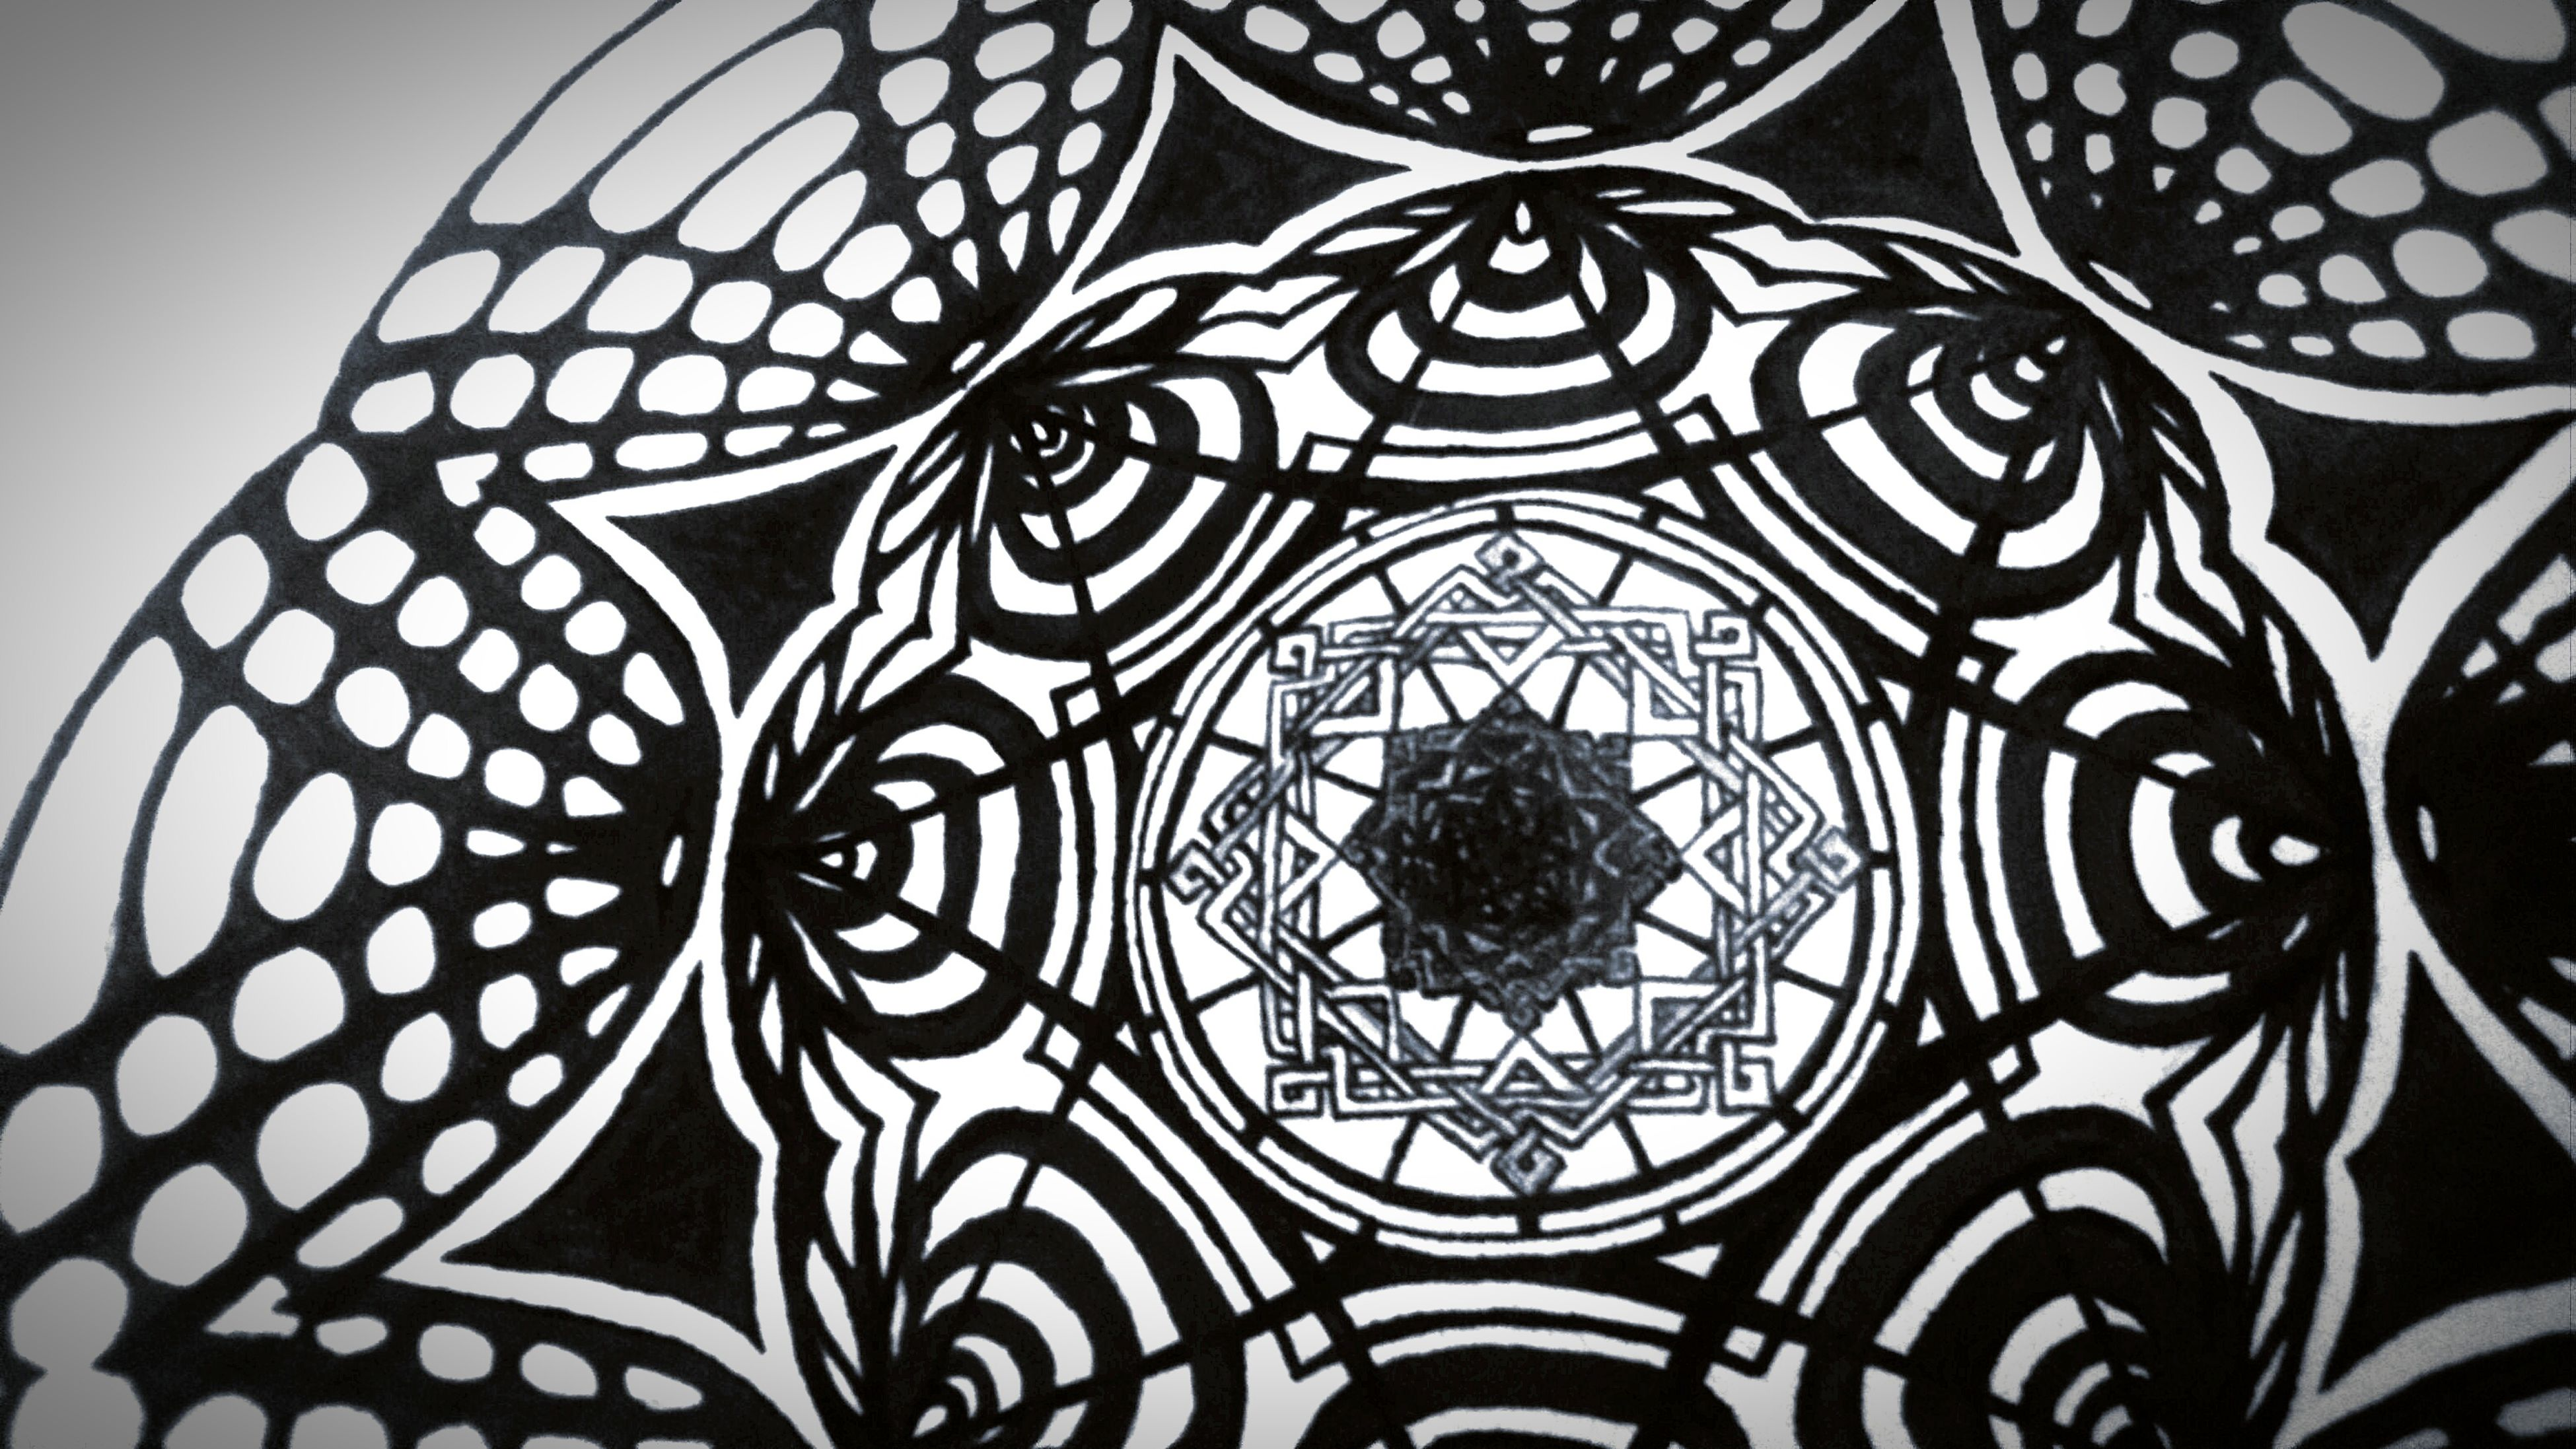 pattern, design, indoors, art and craft, full frame, art, creativity, backgrounds, architecture, low angle view, geometric shape, shape, built structure, floral pattern, decoration, ornate, ceiling, close-up, no people, circle